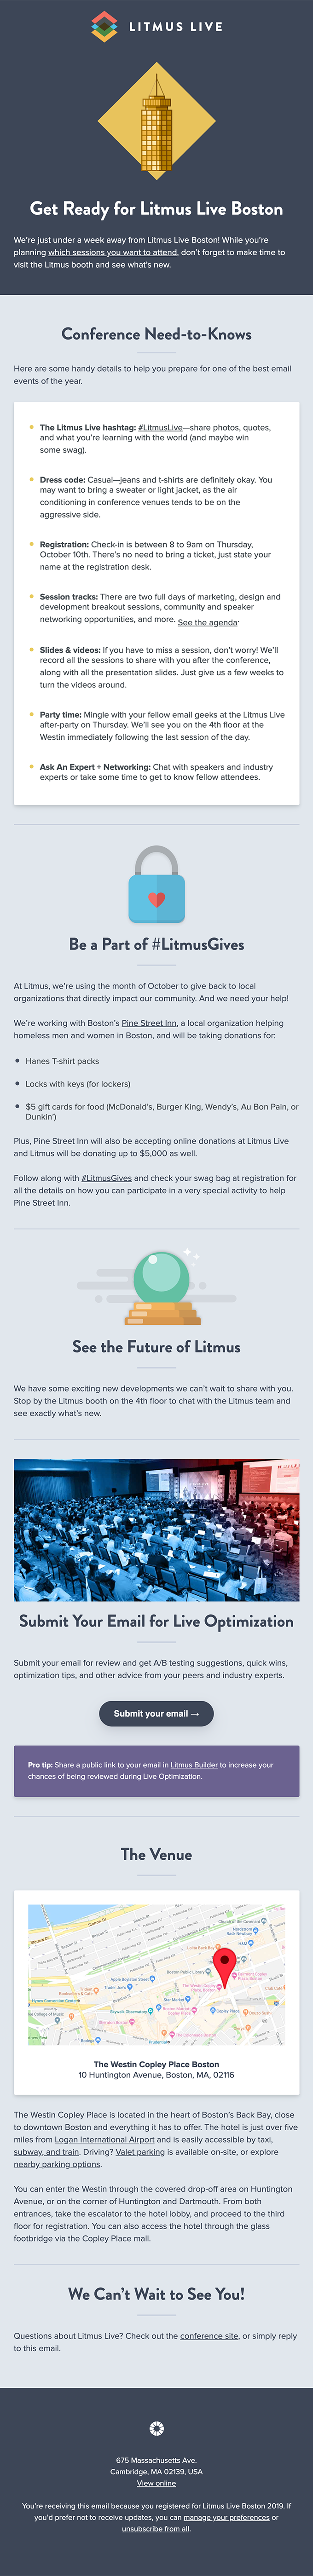 Pack your bags for Litmus Live Boston